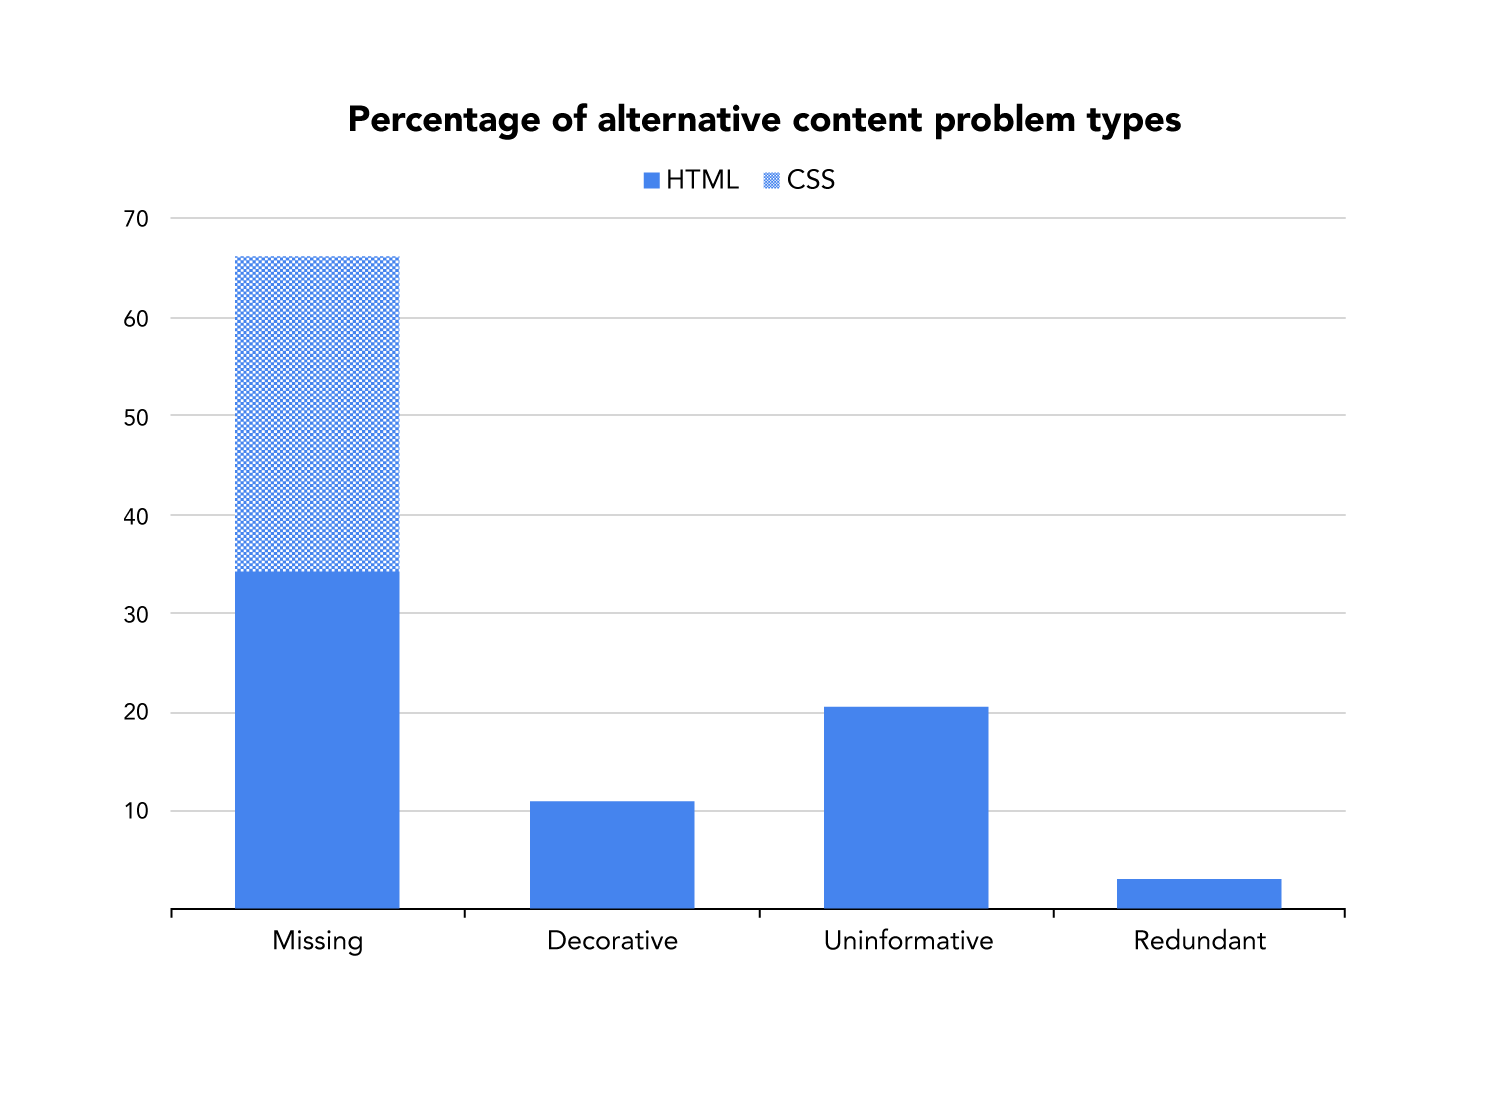 Css background image 50 percentage - Column Graph Of Alt Content Problems As Described By Percentages Given Above Missing Alts